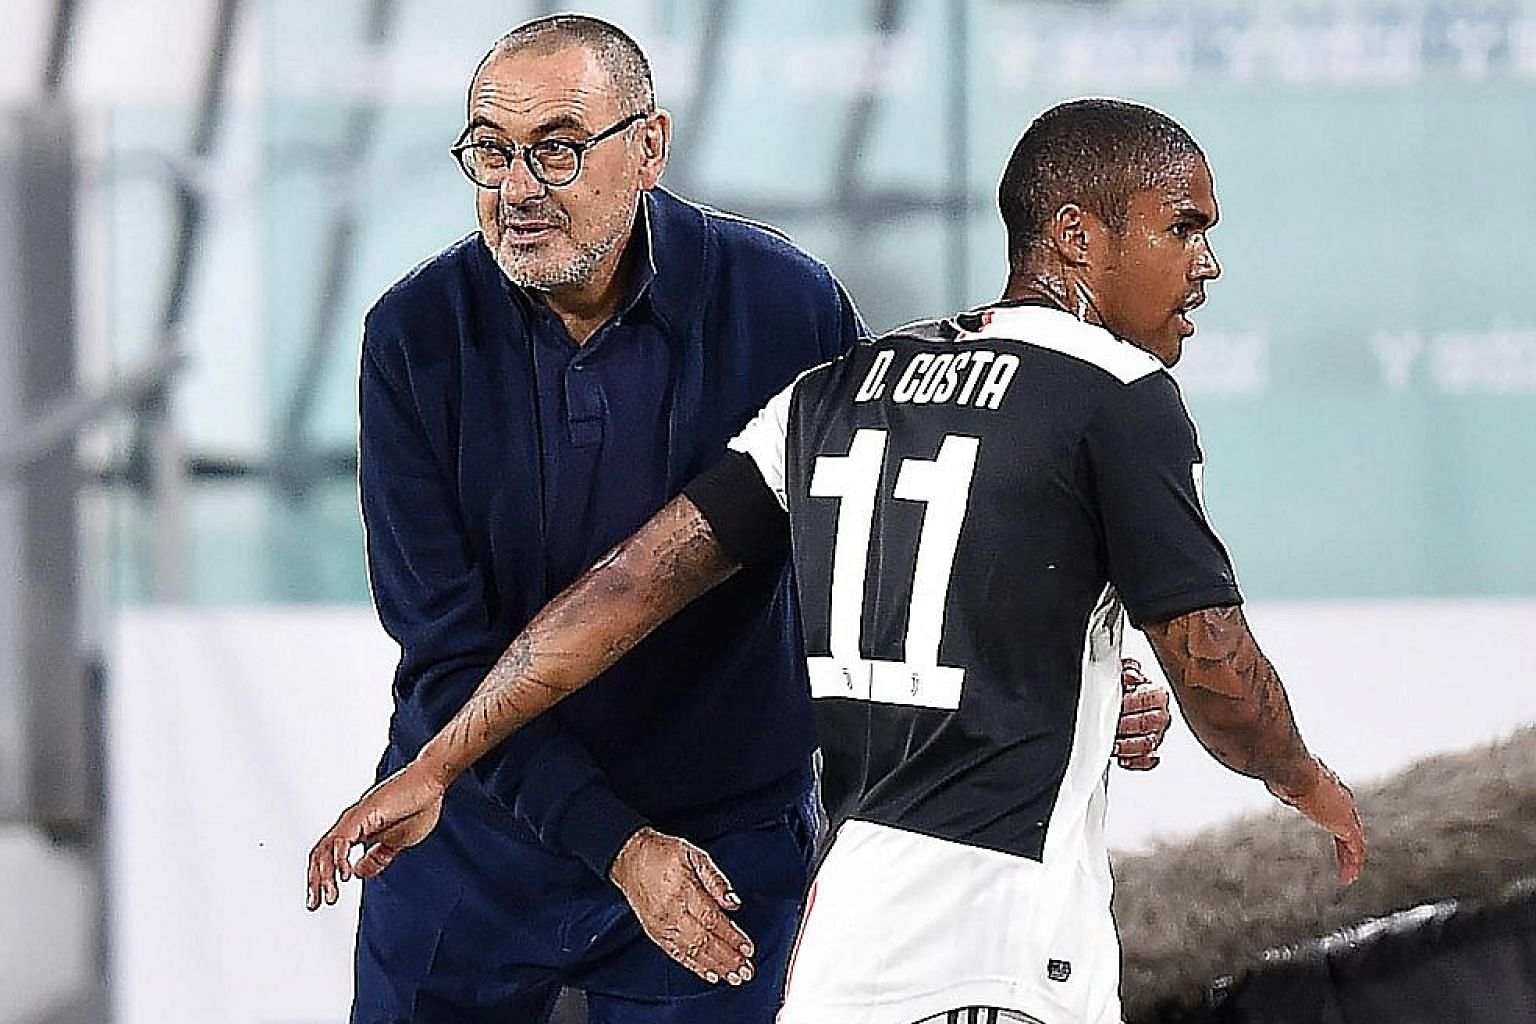 Juventus coach Maurizio Sarri with Douglas Costa after taking him off in the second leg of the Italian Cup semi-final against AC Milan last Friday.